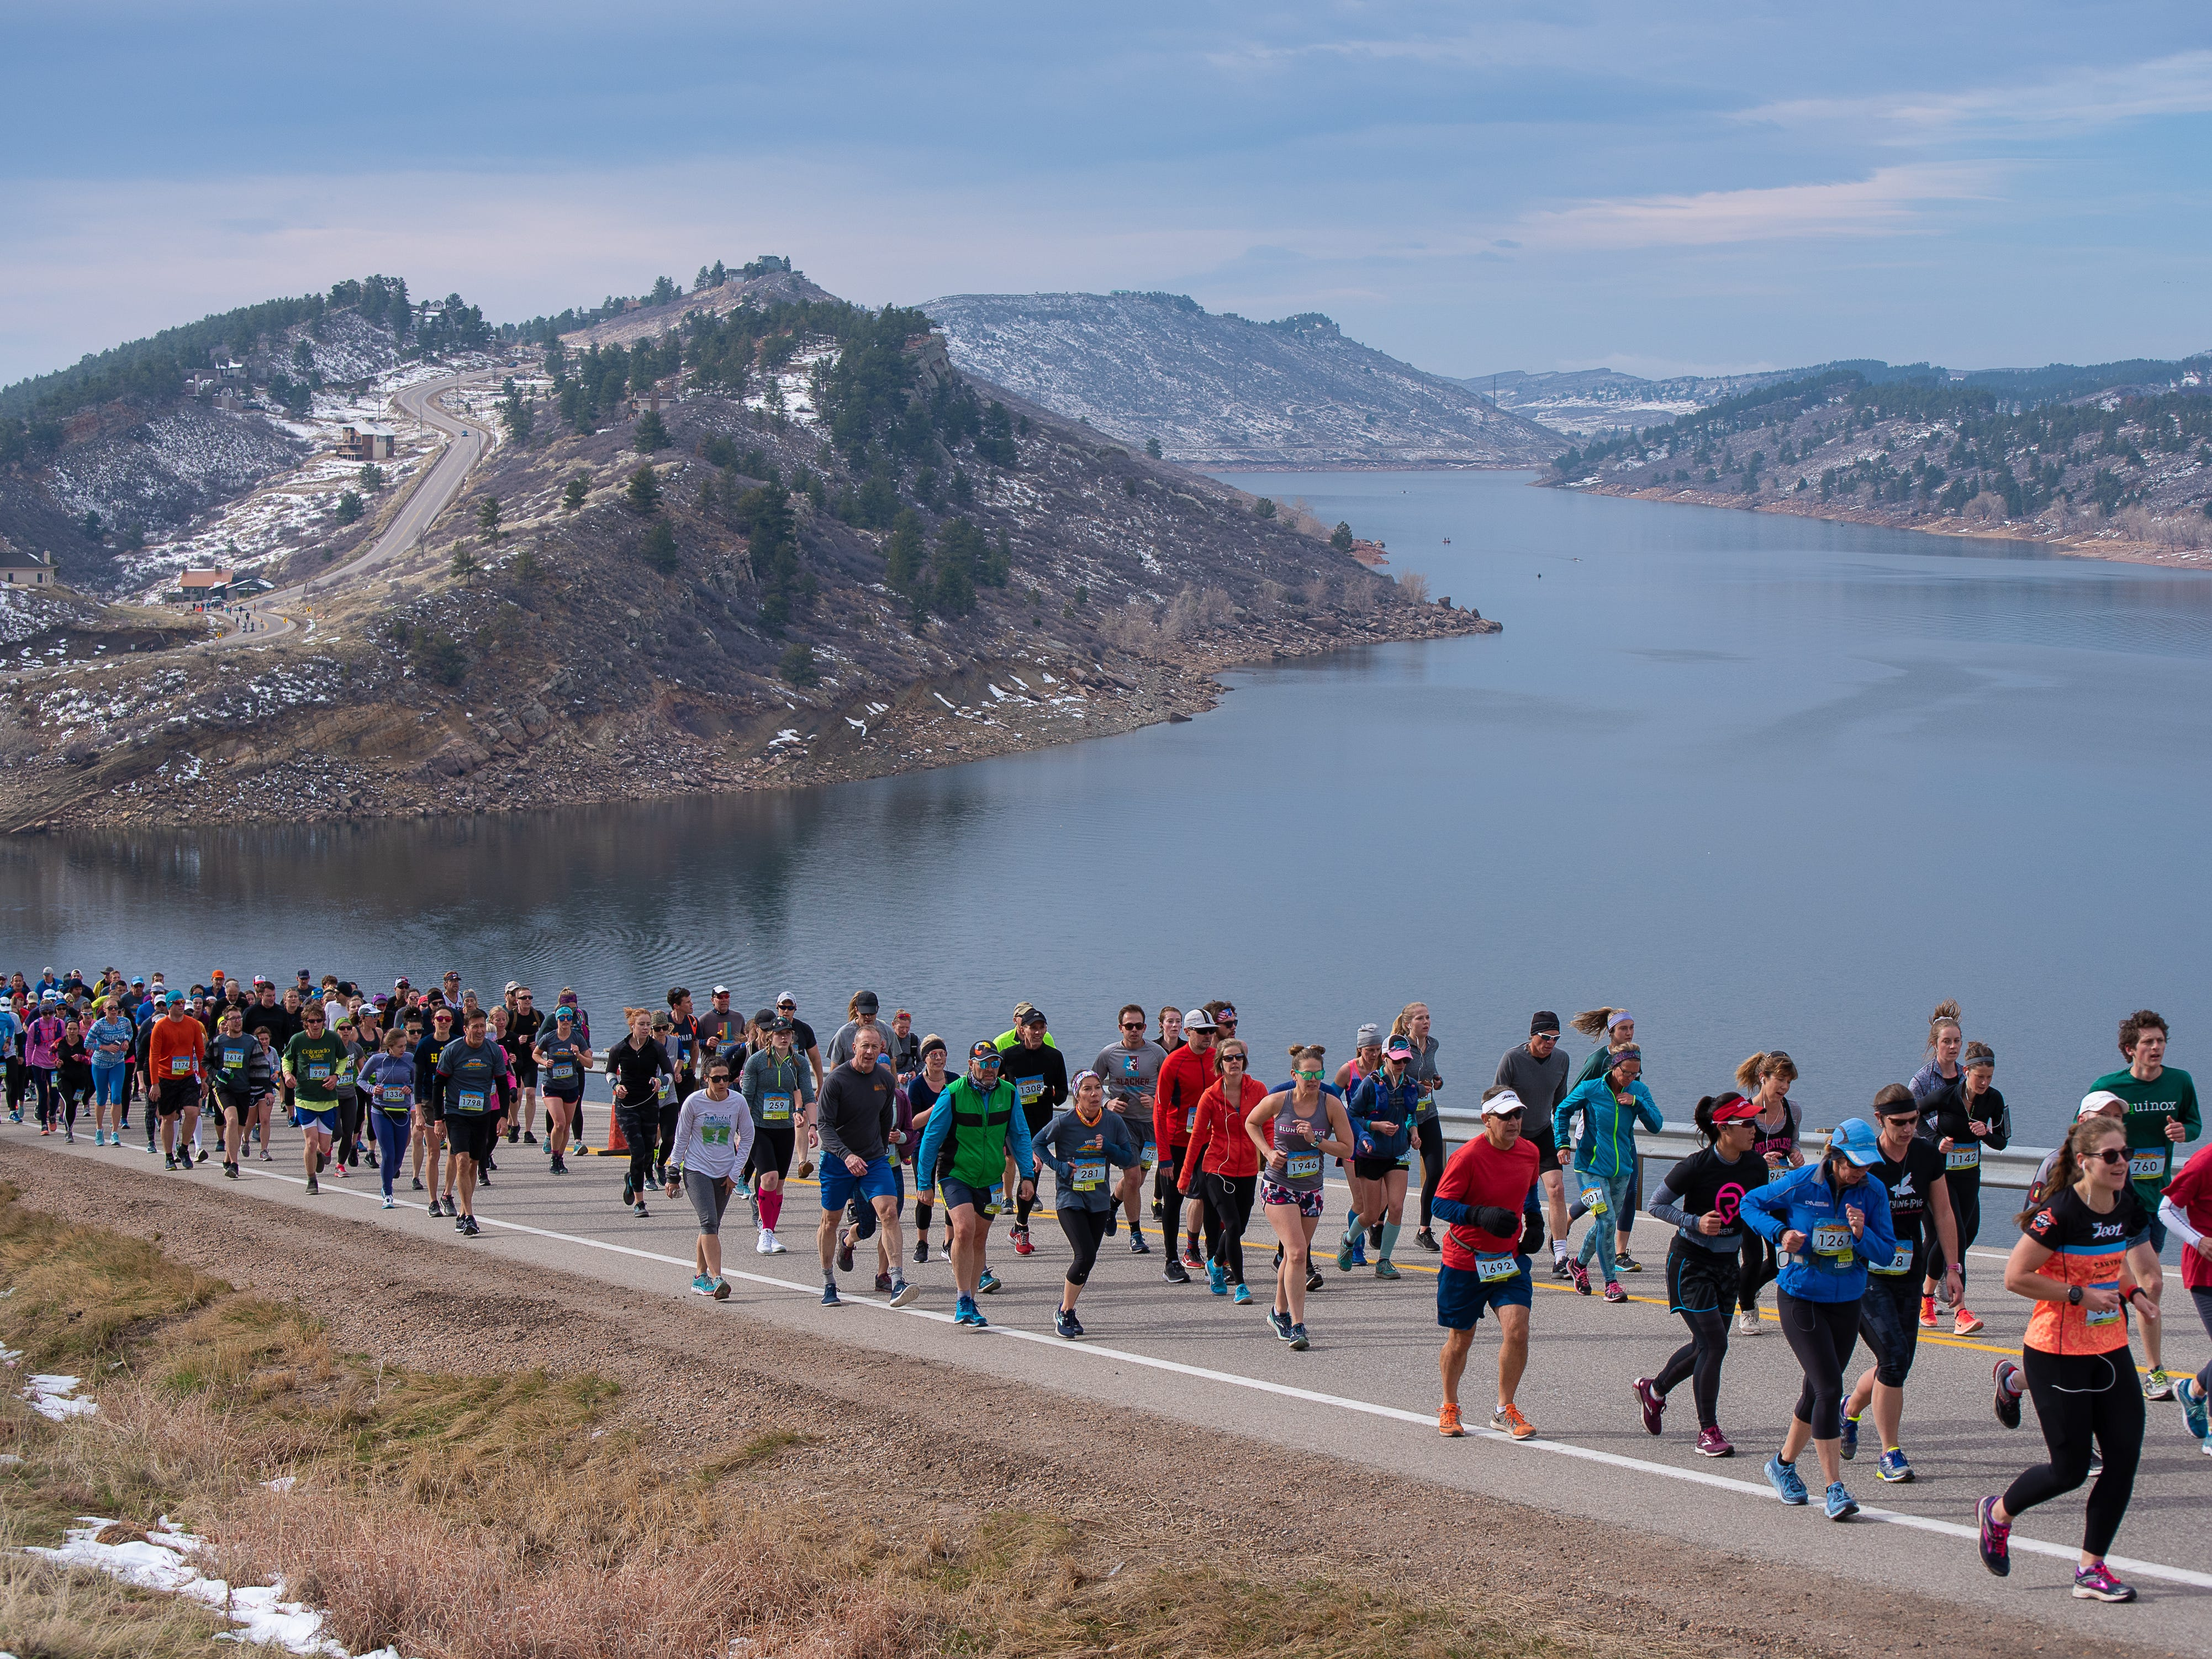 Participants climb Monster Mountain along Horsetooth Reservoir during the Horsetooth Half Marathon on Sunday, April 14, 2019, in Fort Collins, Colo.